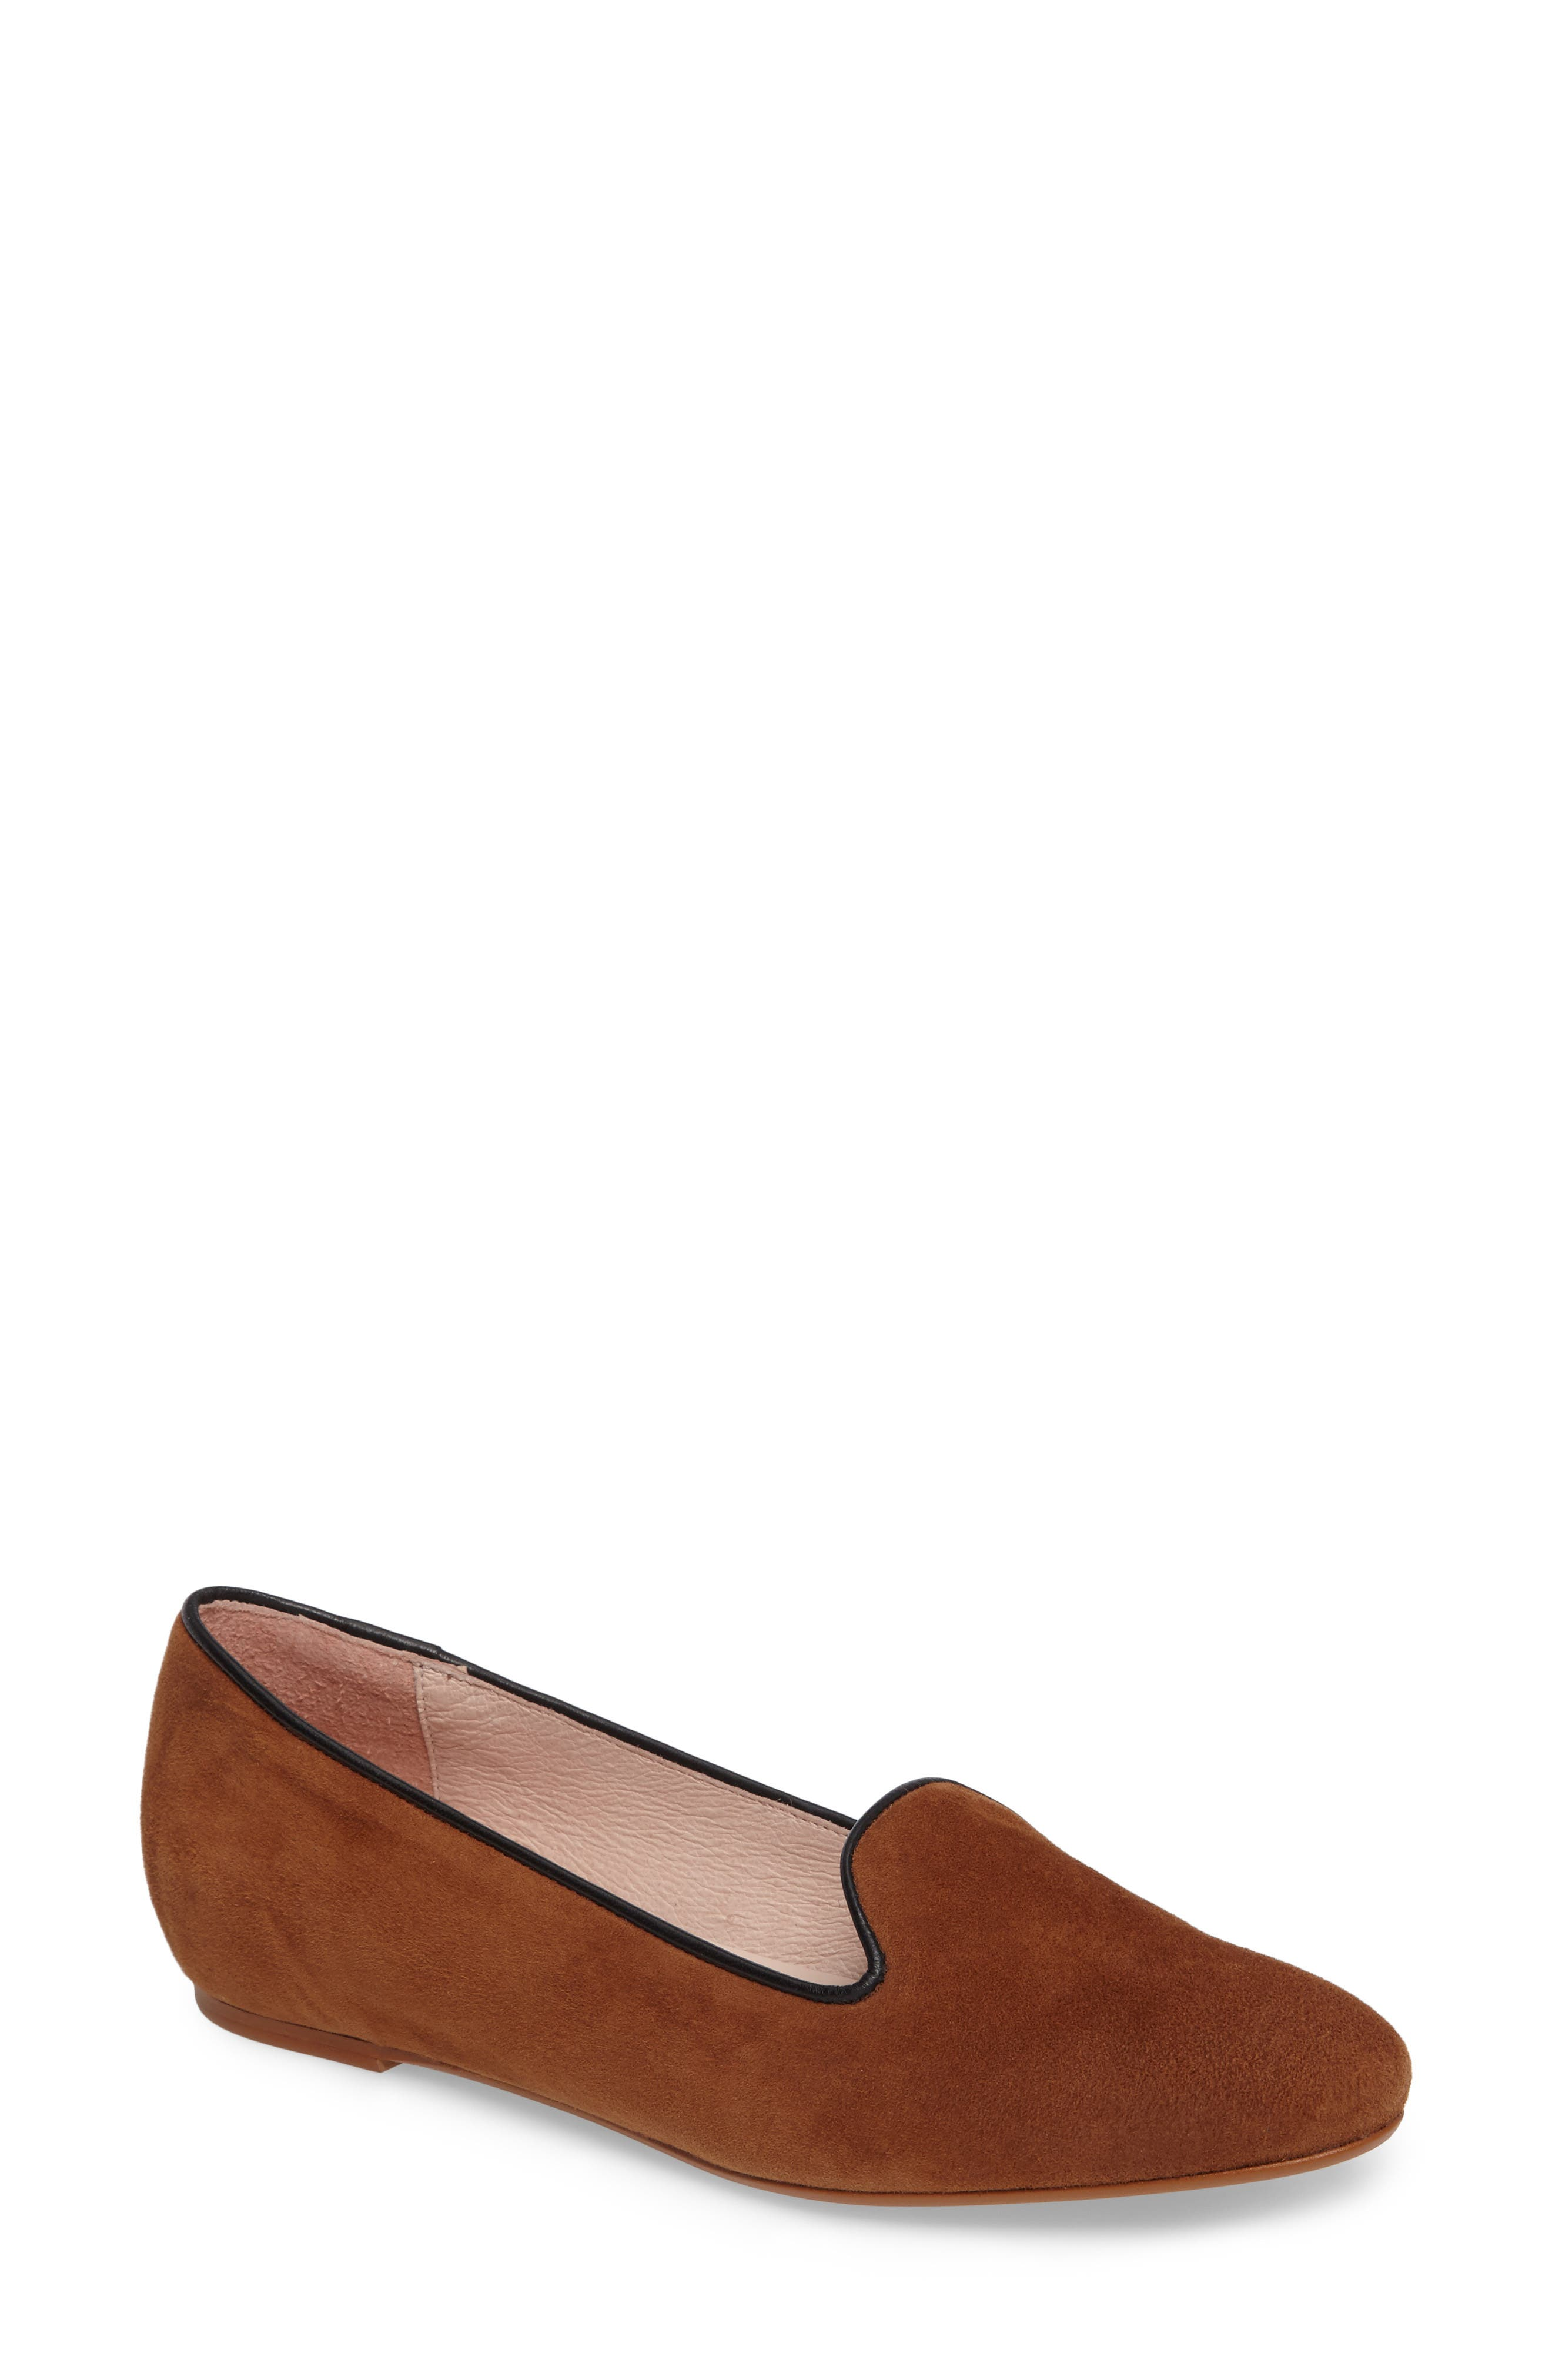 patricia green Waverly Loafer Flat (Women)